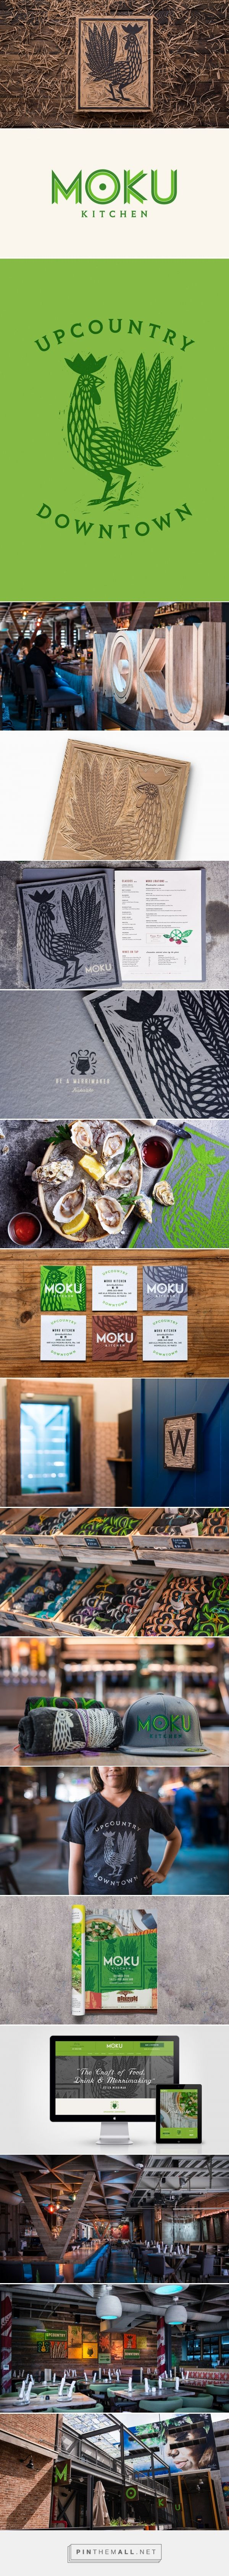 Moku Kitchen Restaurant Branding by Scott Naauao | Fivestar Branding Agency – Design and Branding Agency & Curated Inspiration Gallery #branding #brand #brandidentity #identity #design #designinspiration